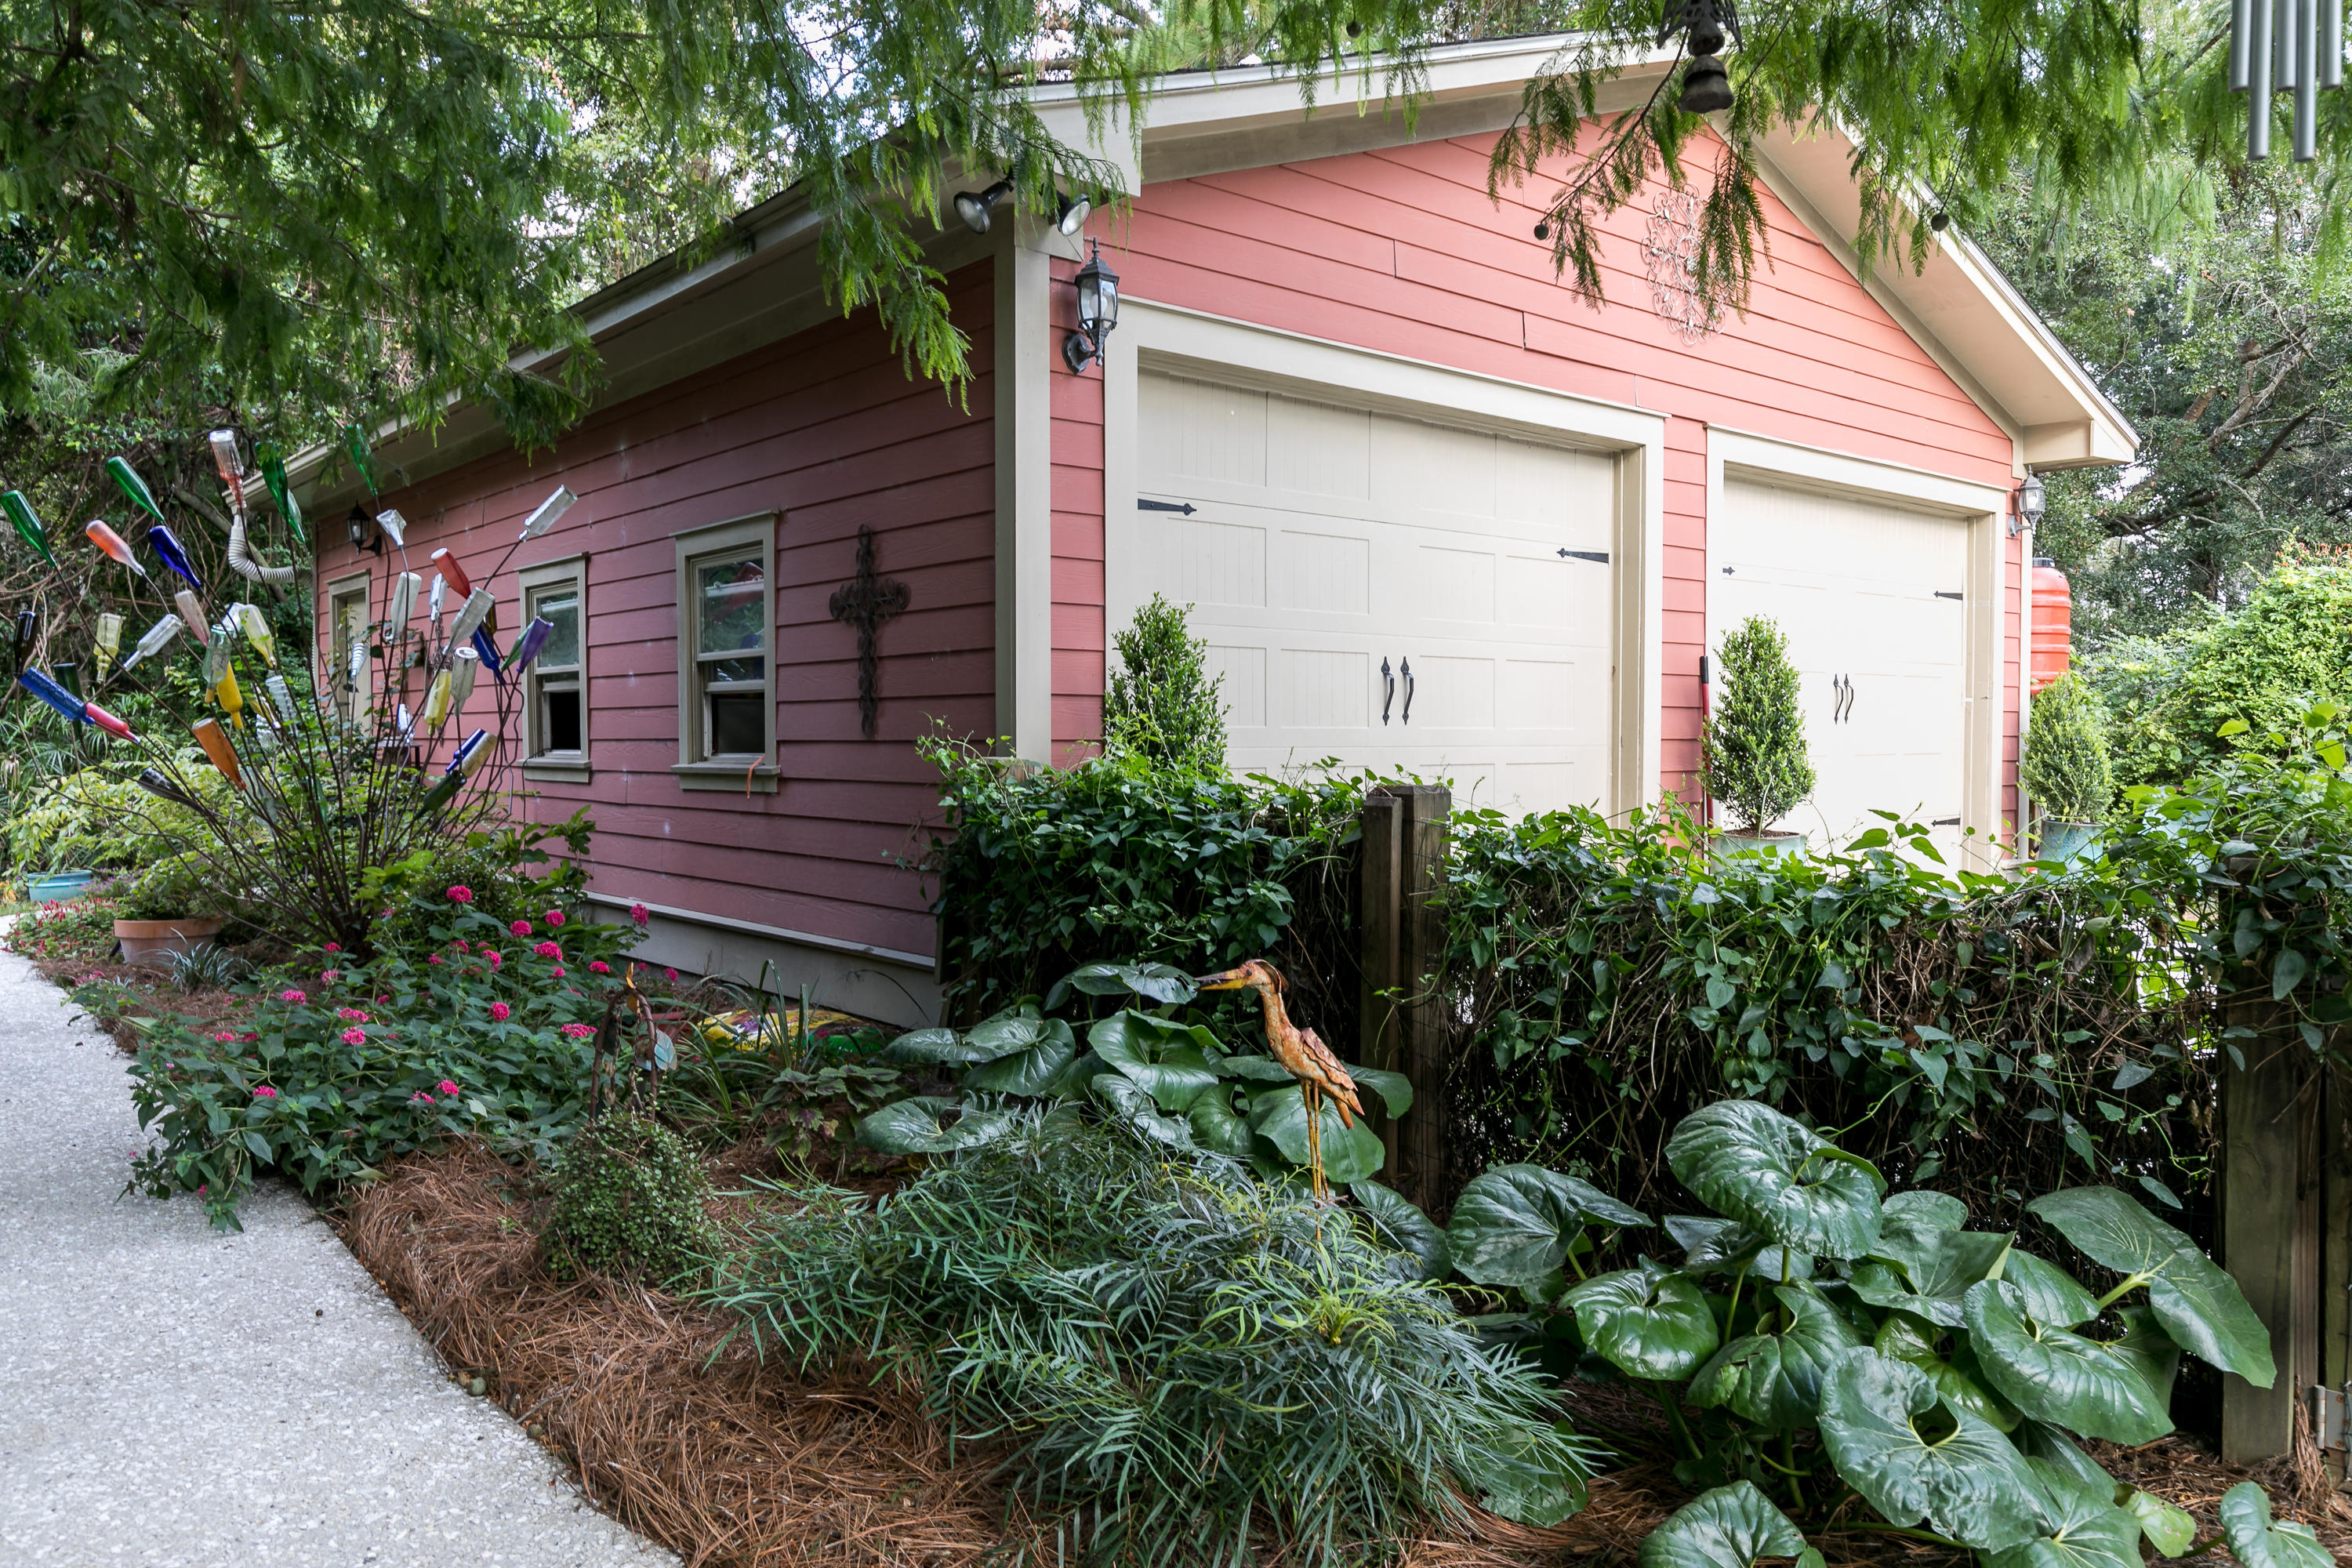 Home for sale 1016 Tall Pine Road, The Groves, Mt. Pleasant, SC